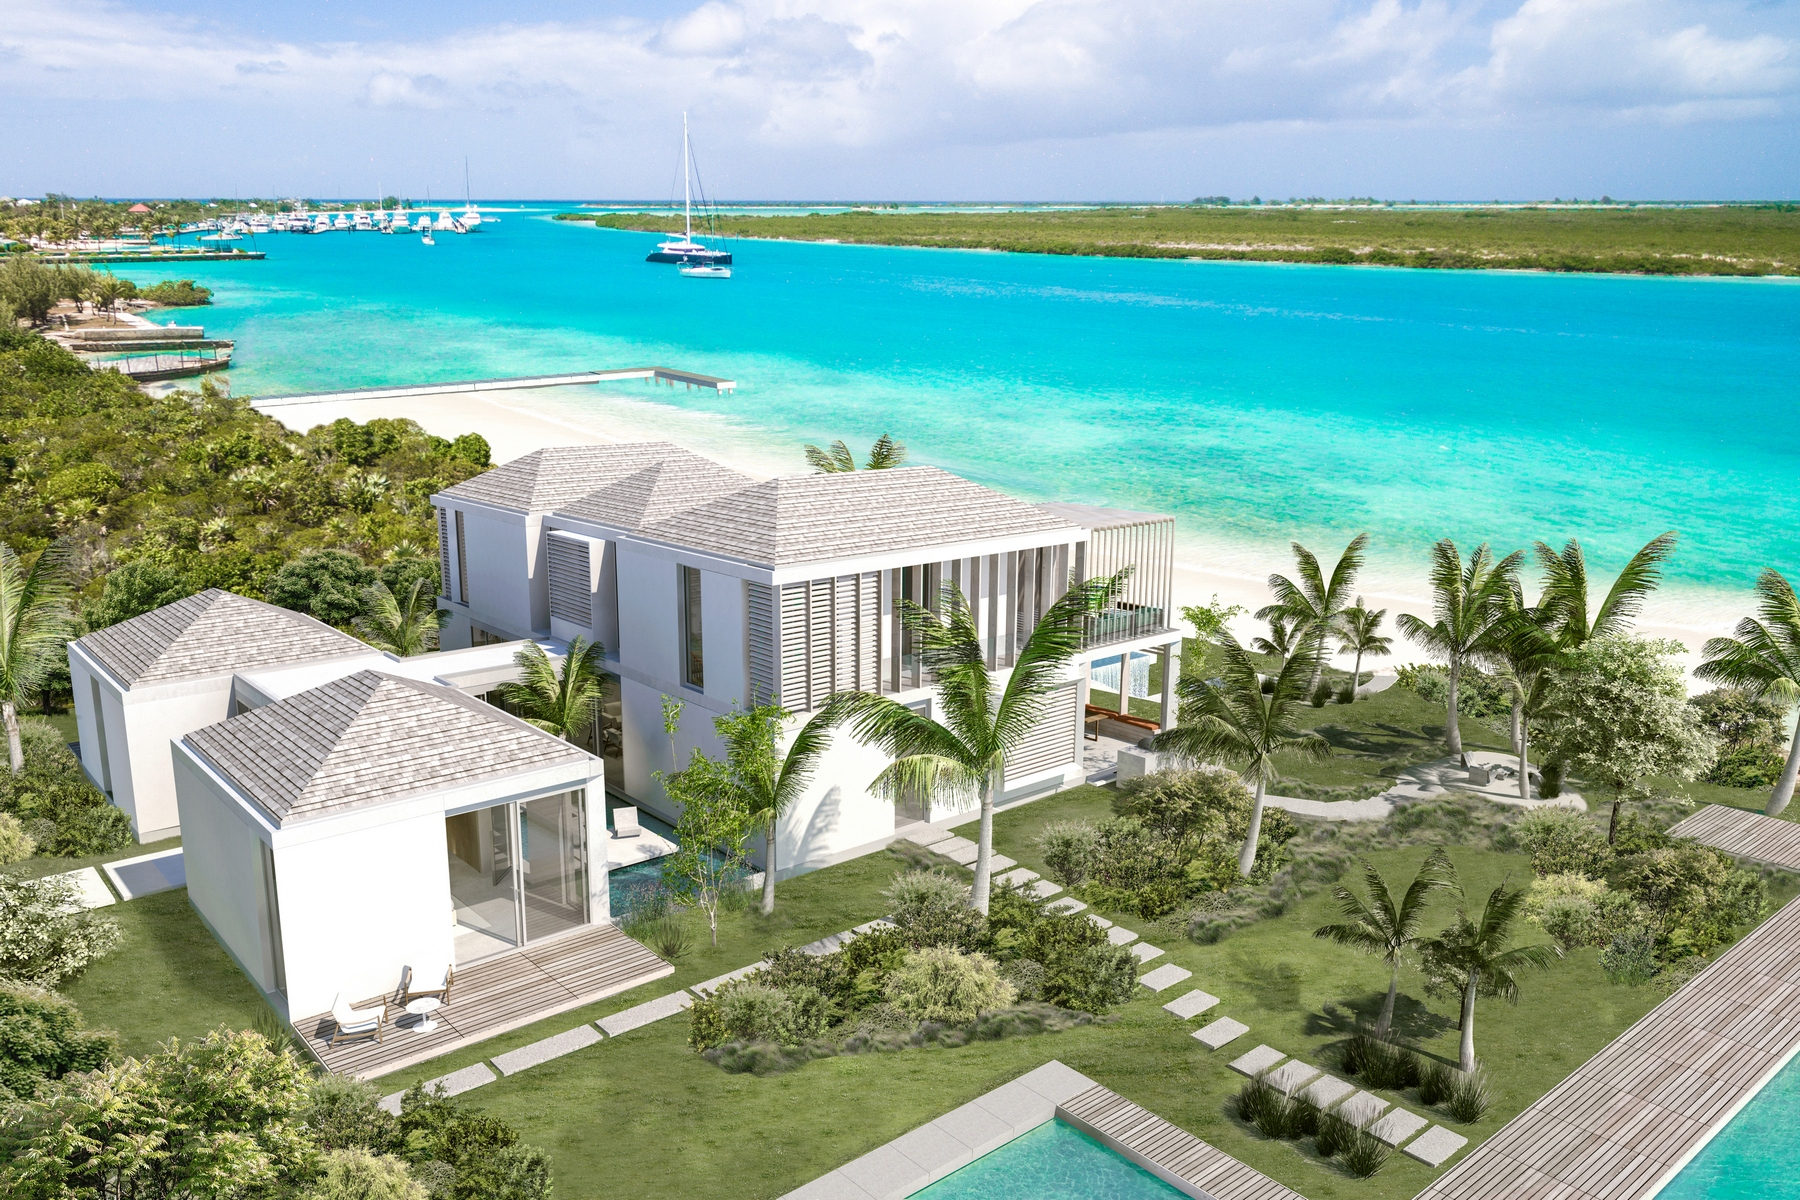 Single Family Home for Sale at Pavilion House - Beachfront Lot 1 Blue Cay Estate, Leeward, Turks And Caicos Islands